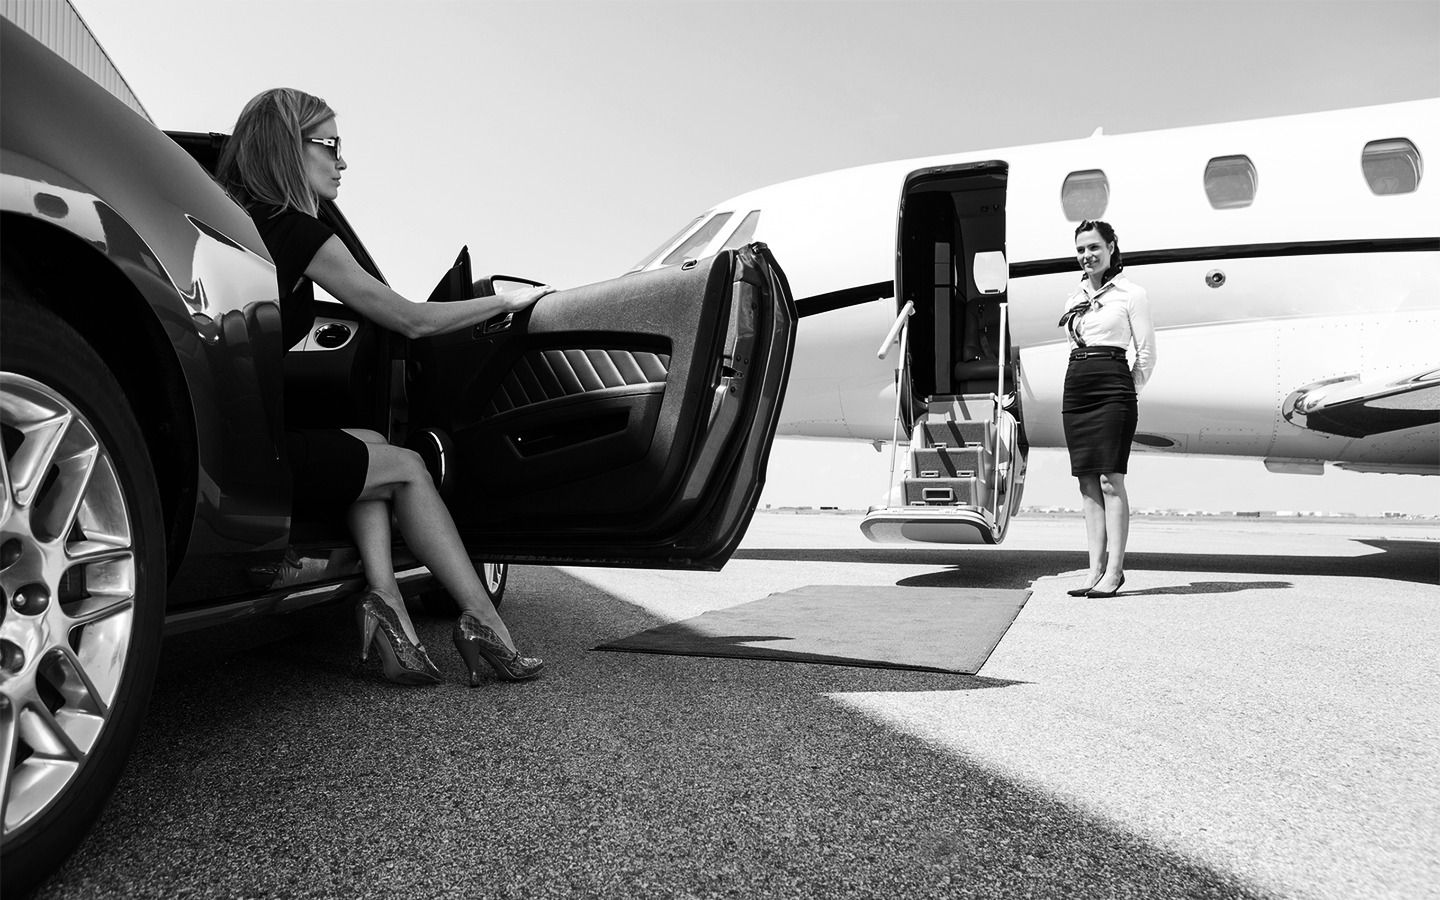 Best Limo Services in New York Sls Limo Service (With